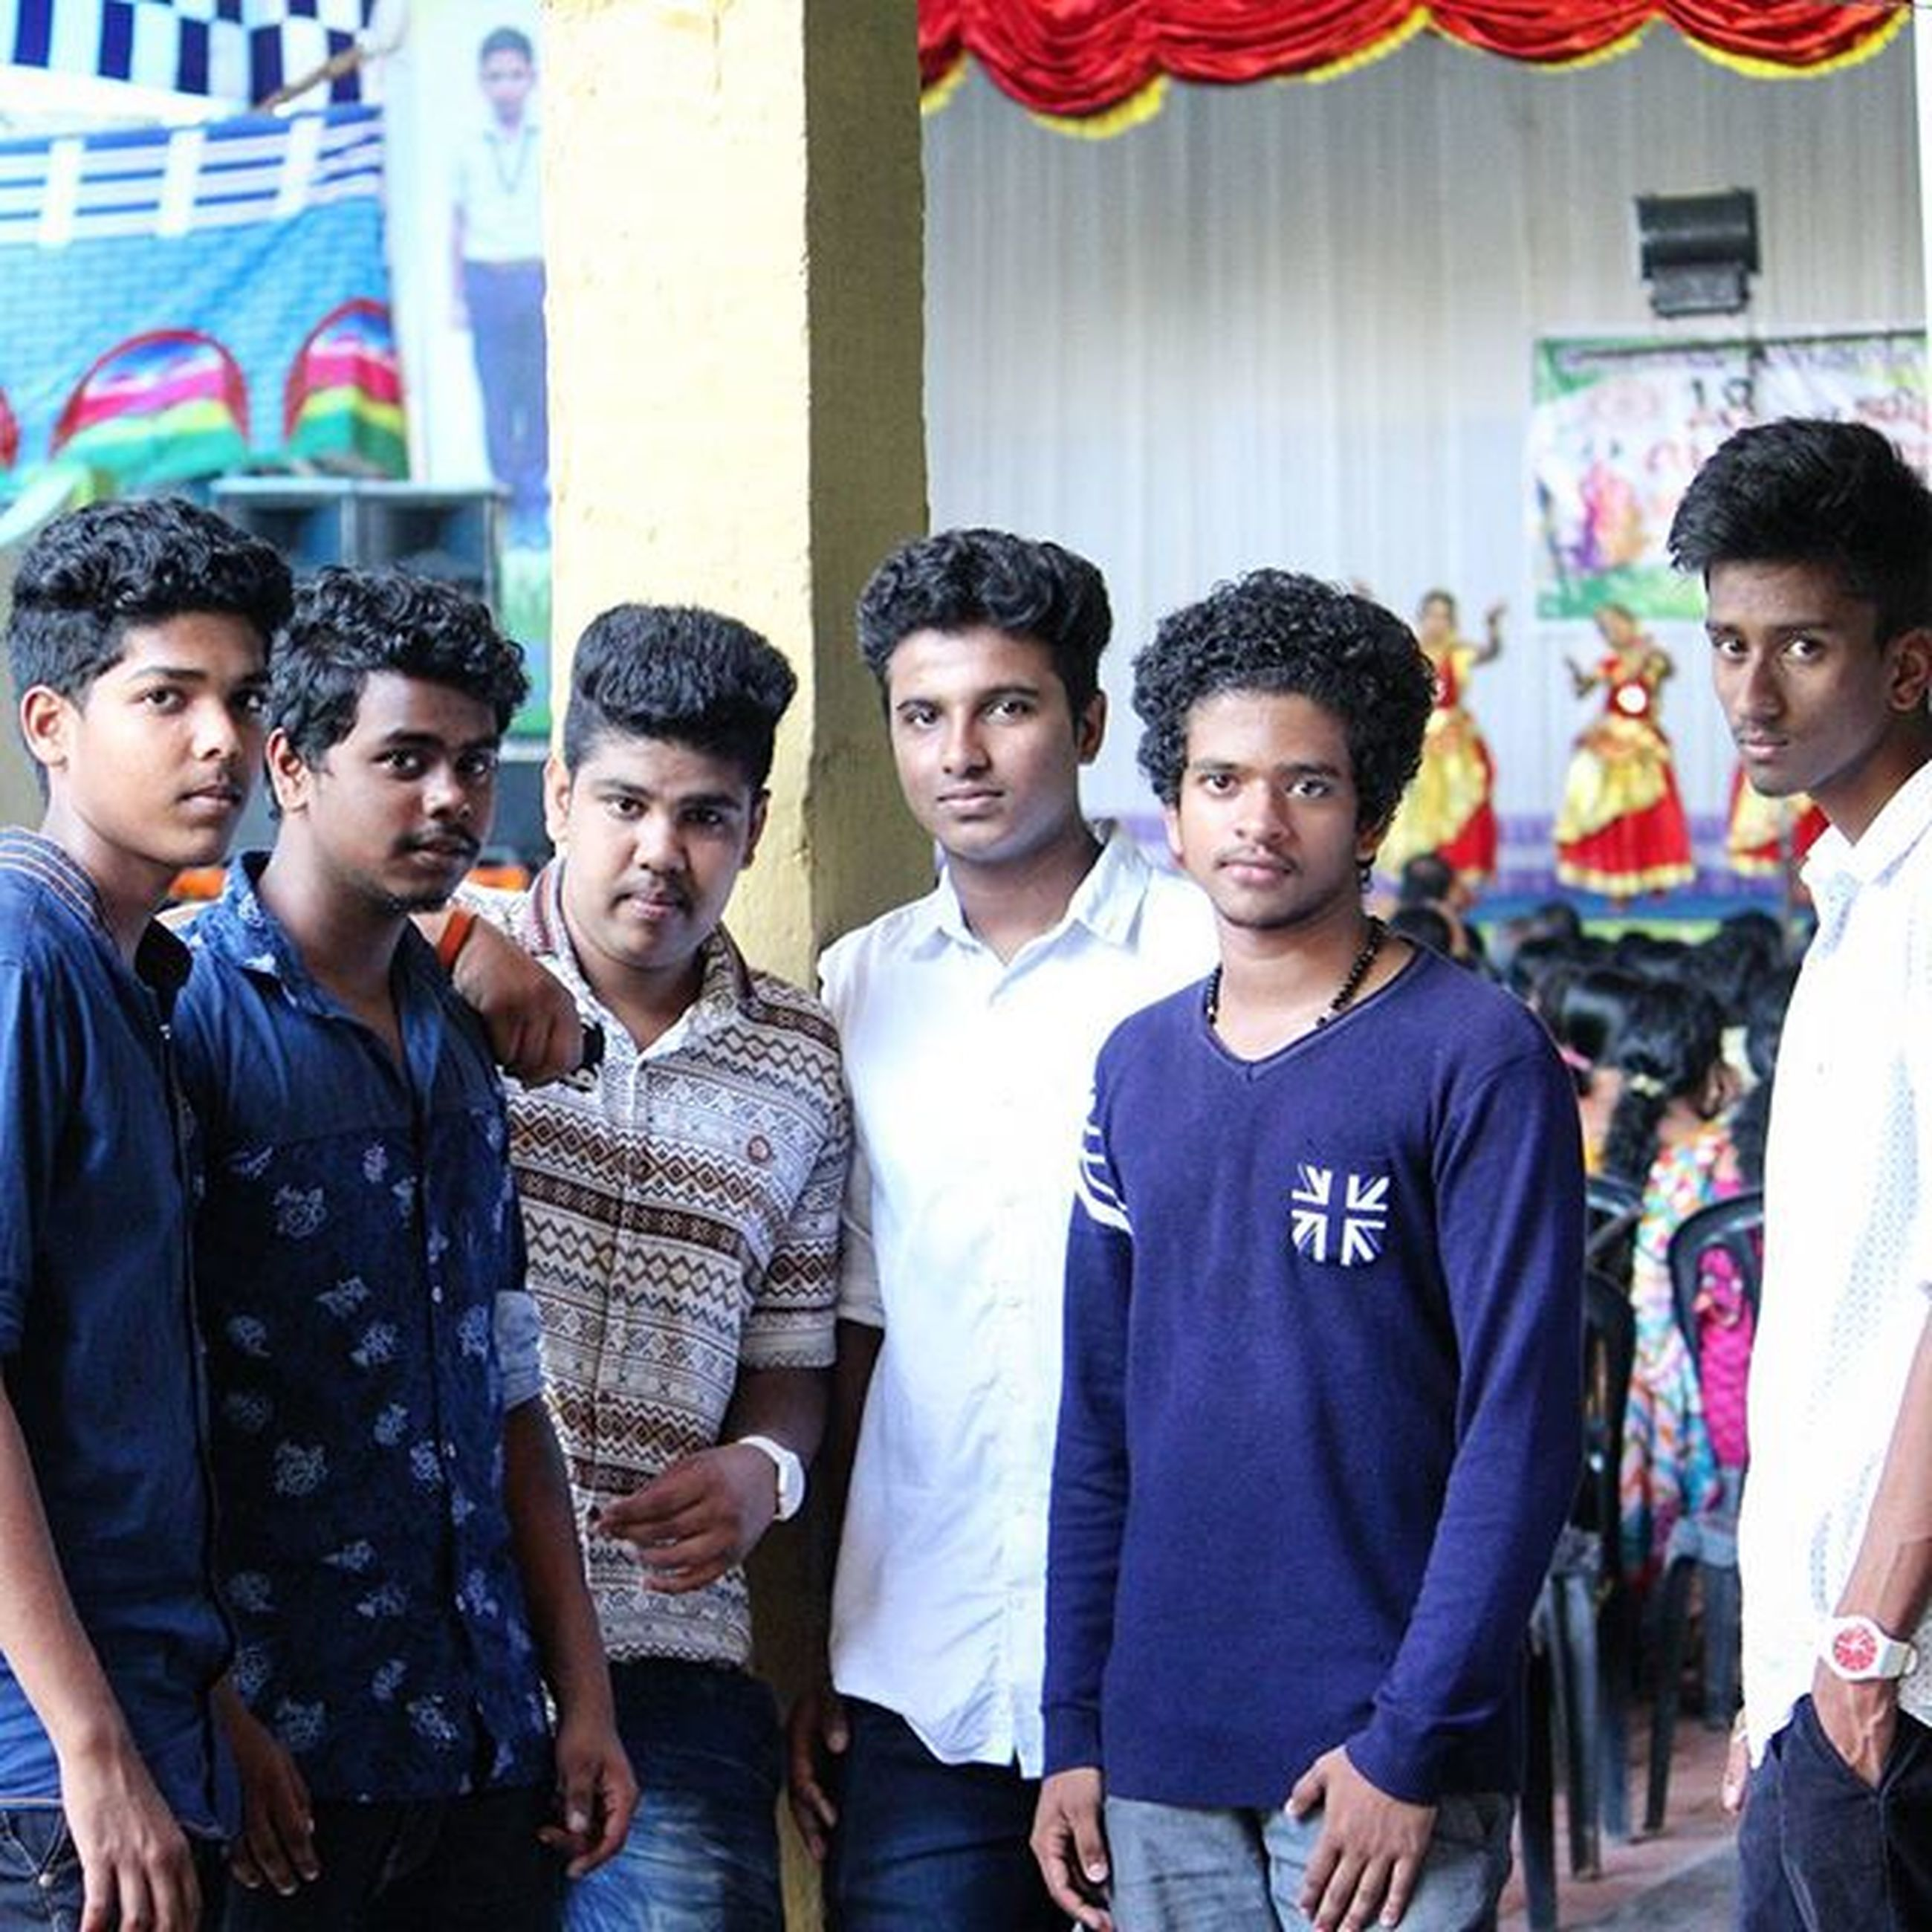 togetherness, lifestyles, leisure activity, portrait, happiness, casual clothing, bonding, person, friendship, looking at camera, young men, love, front view, large group of people, smiling, standing, men, young adult